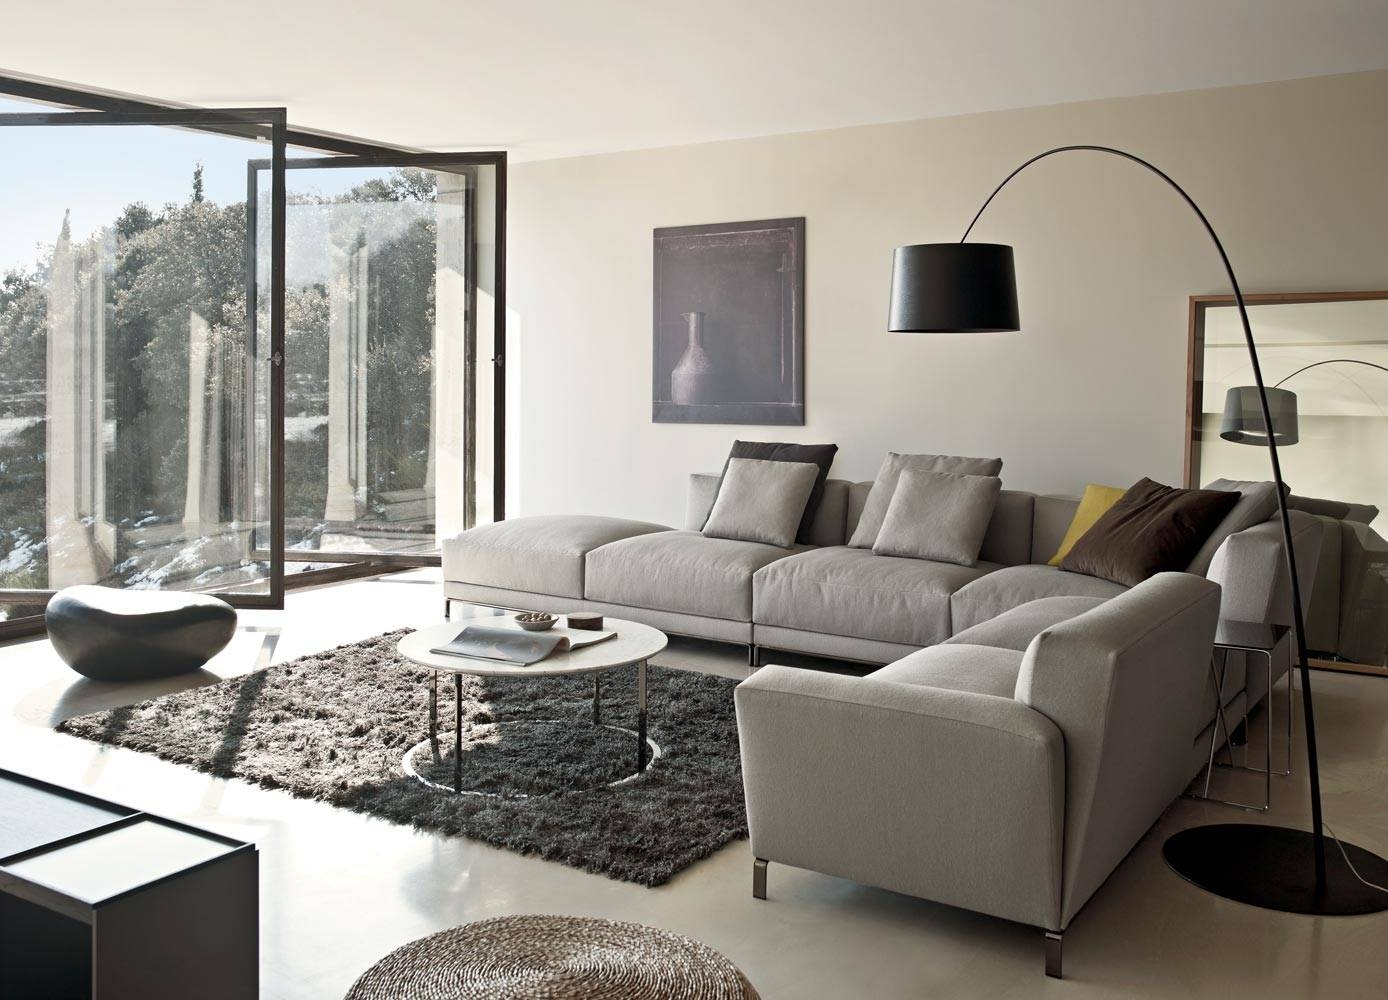 Perfect Decorating With A Sectional Sofa 14 For Your Slim within Decorating With A Sectional Sofa (Image 23 of 30)